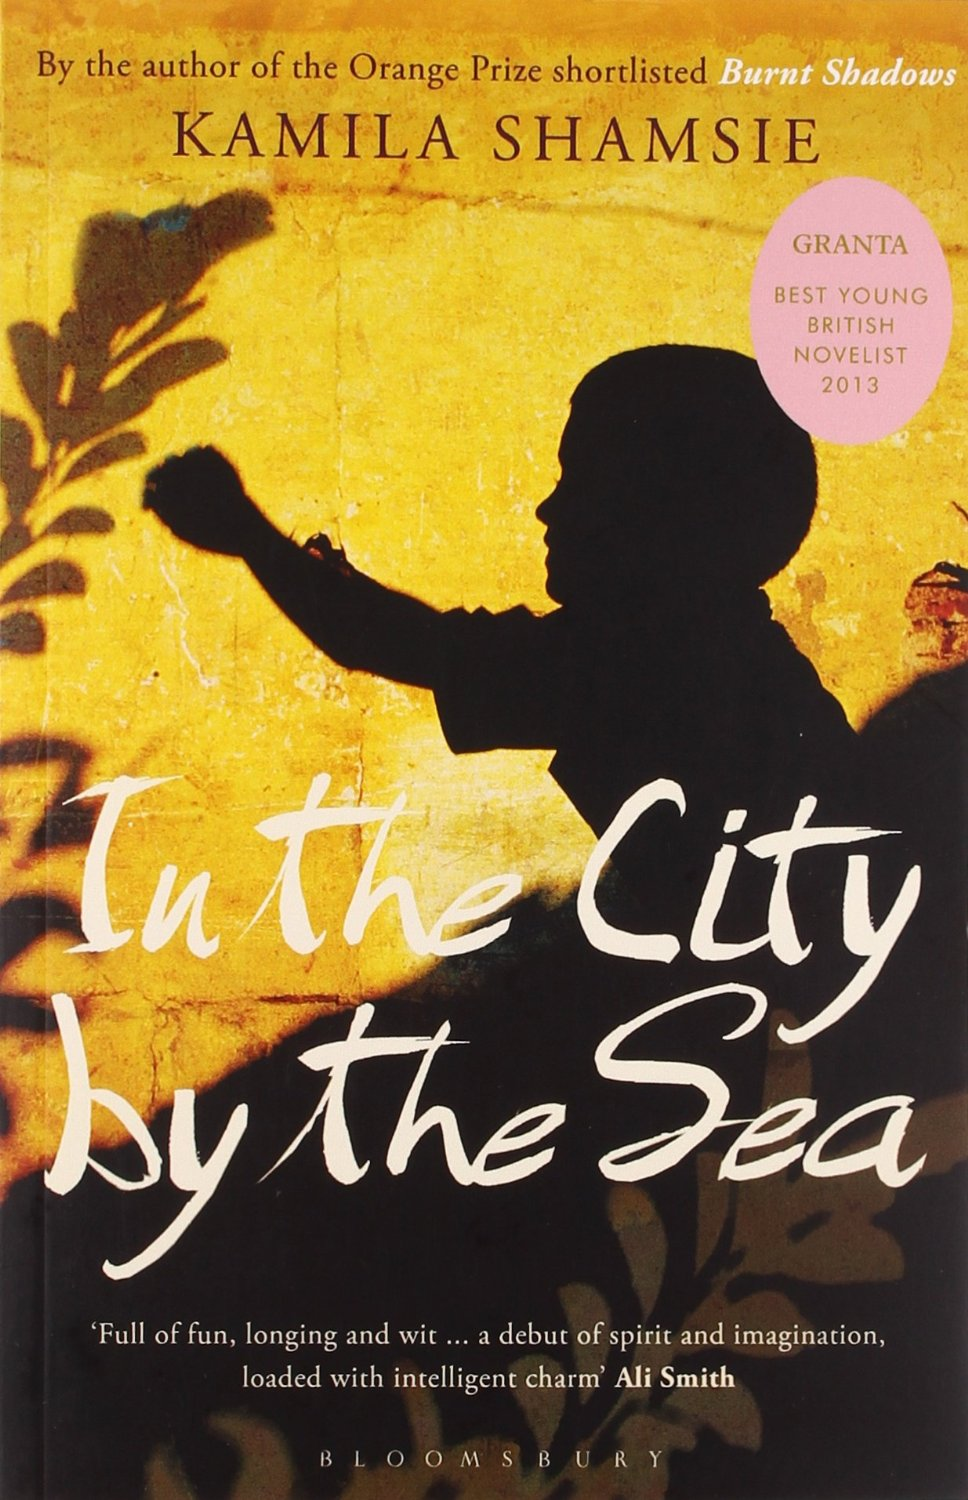 In the City by the Sea Kamila Shamsie's ...